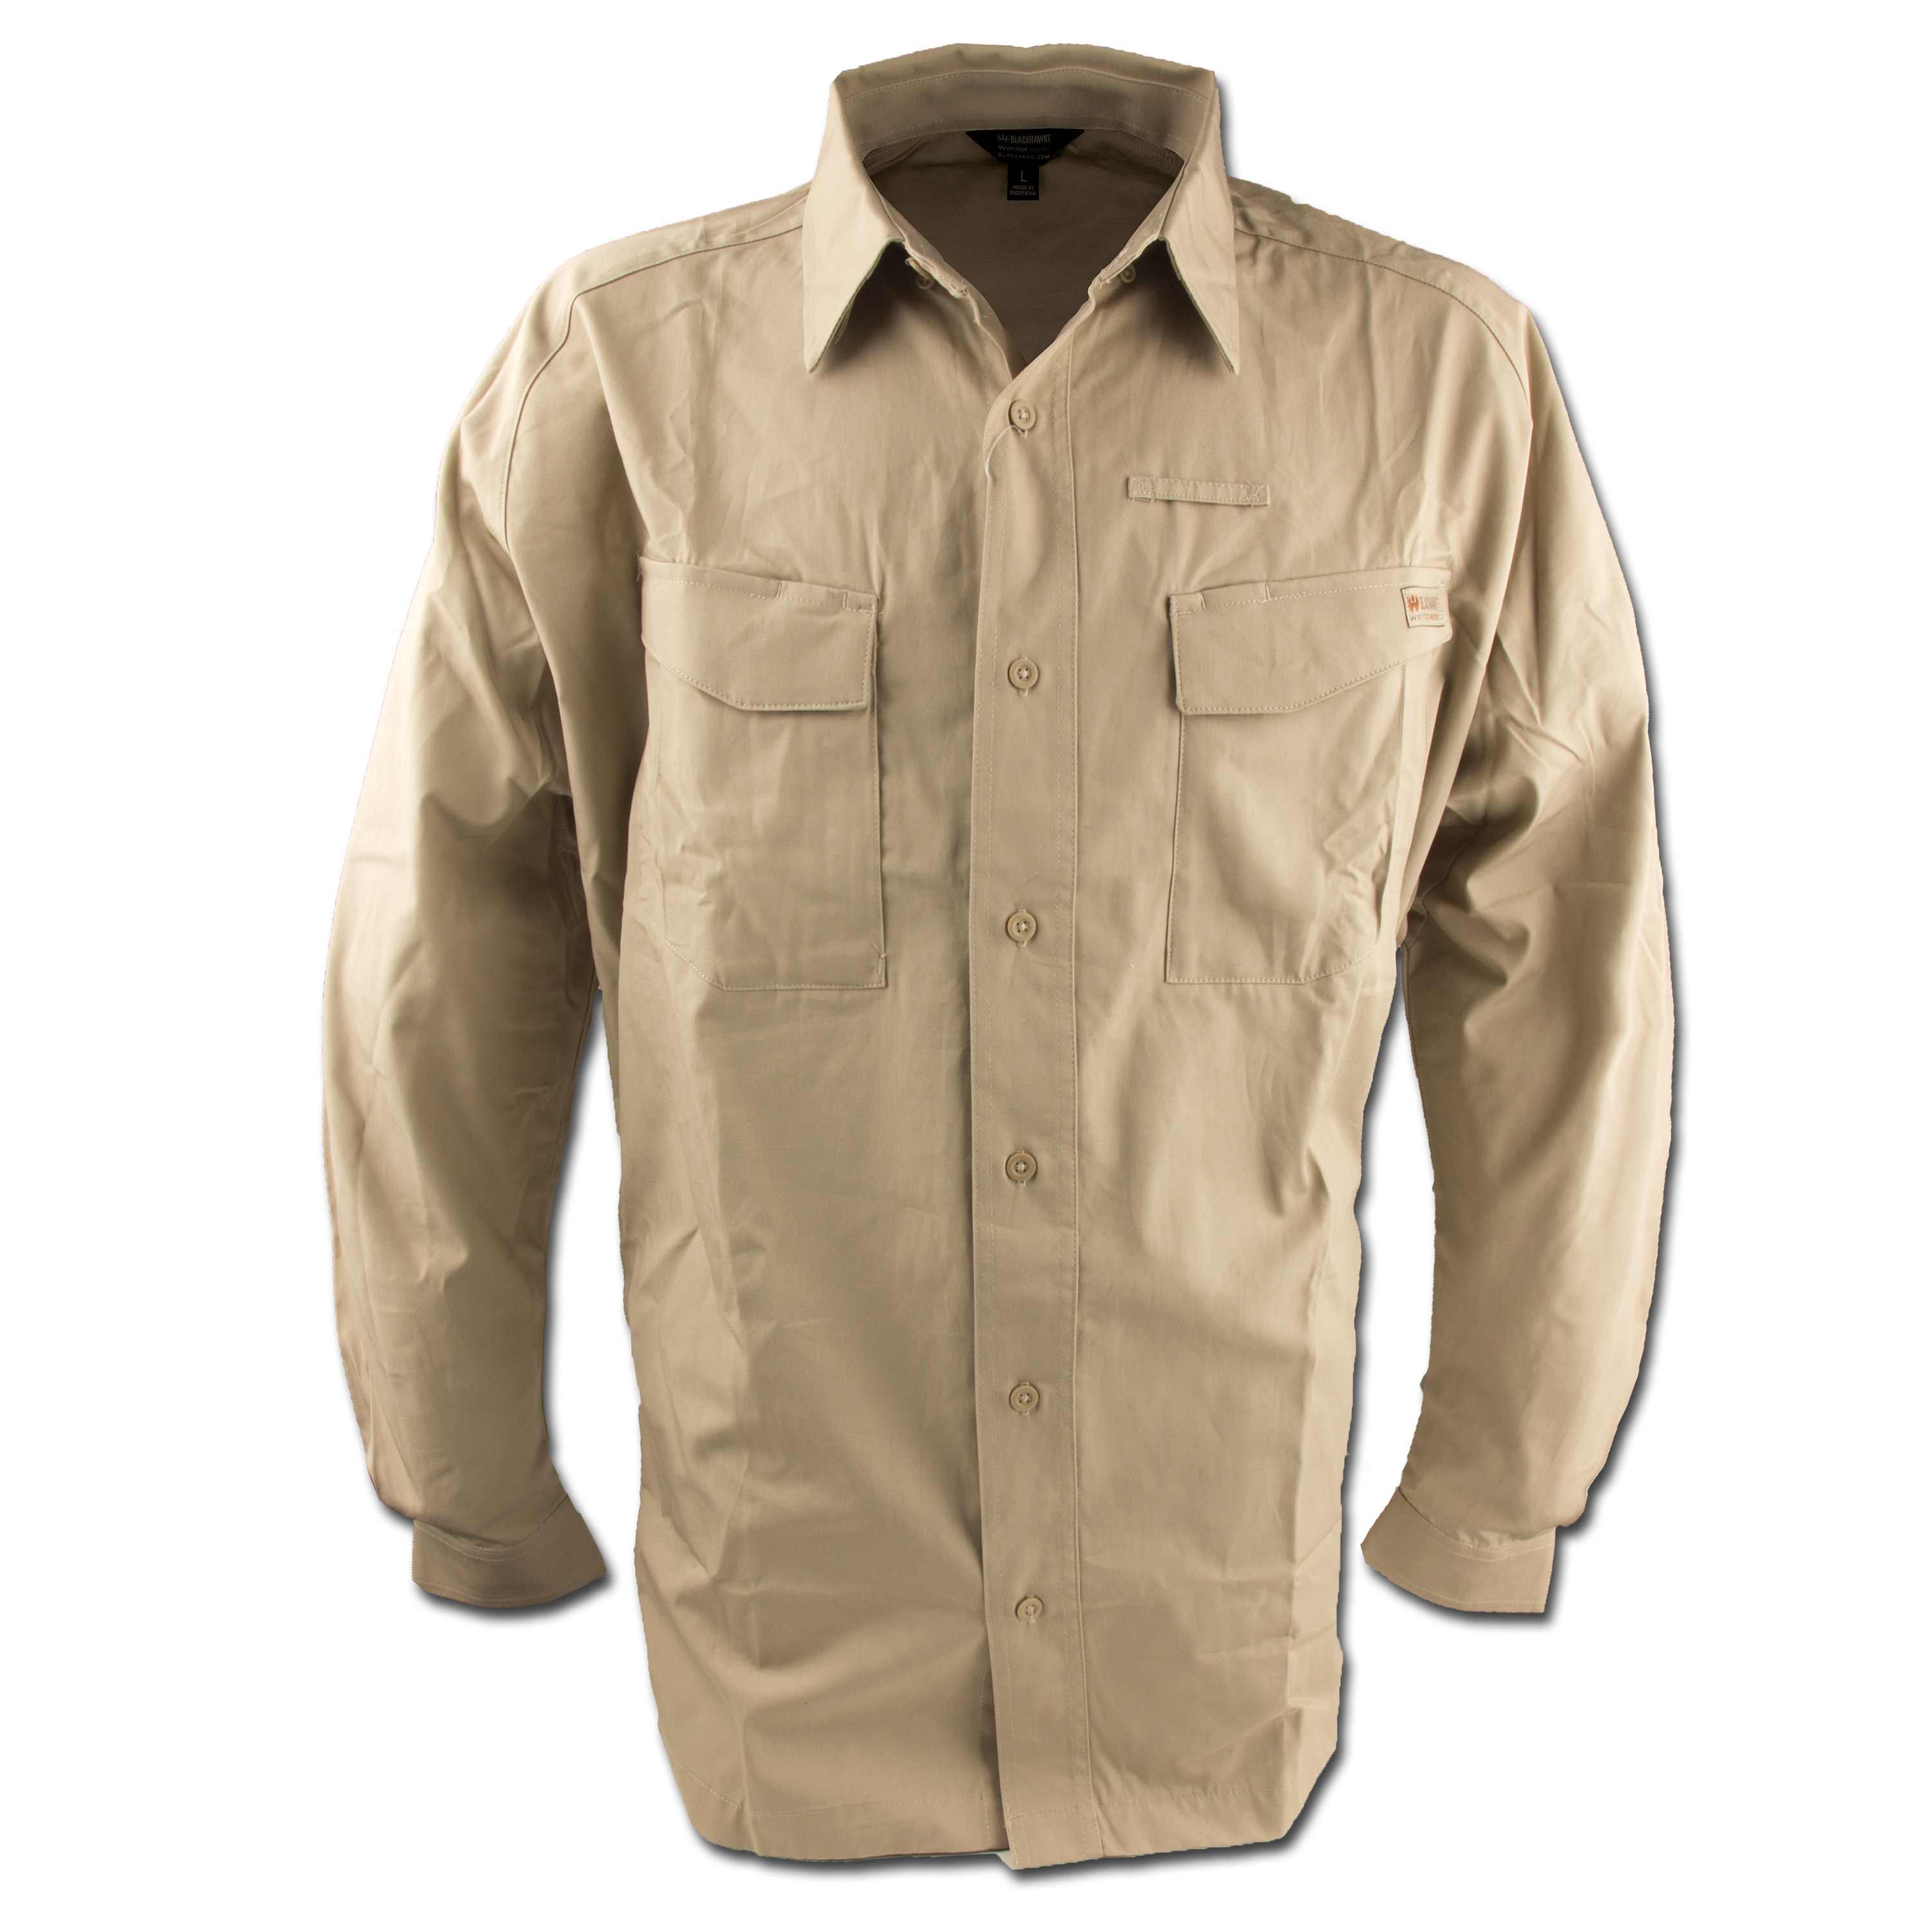 Blackhawk Performance Cotton Tactical Shirt Longsleeve khaki